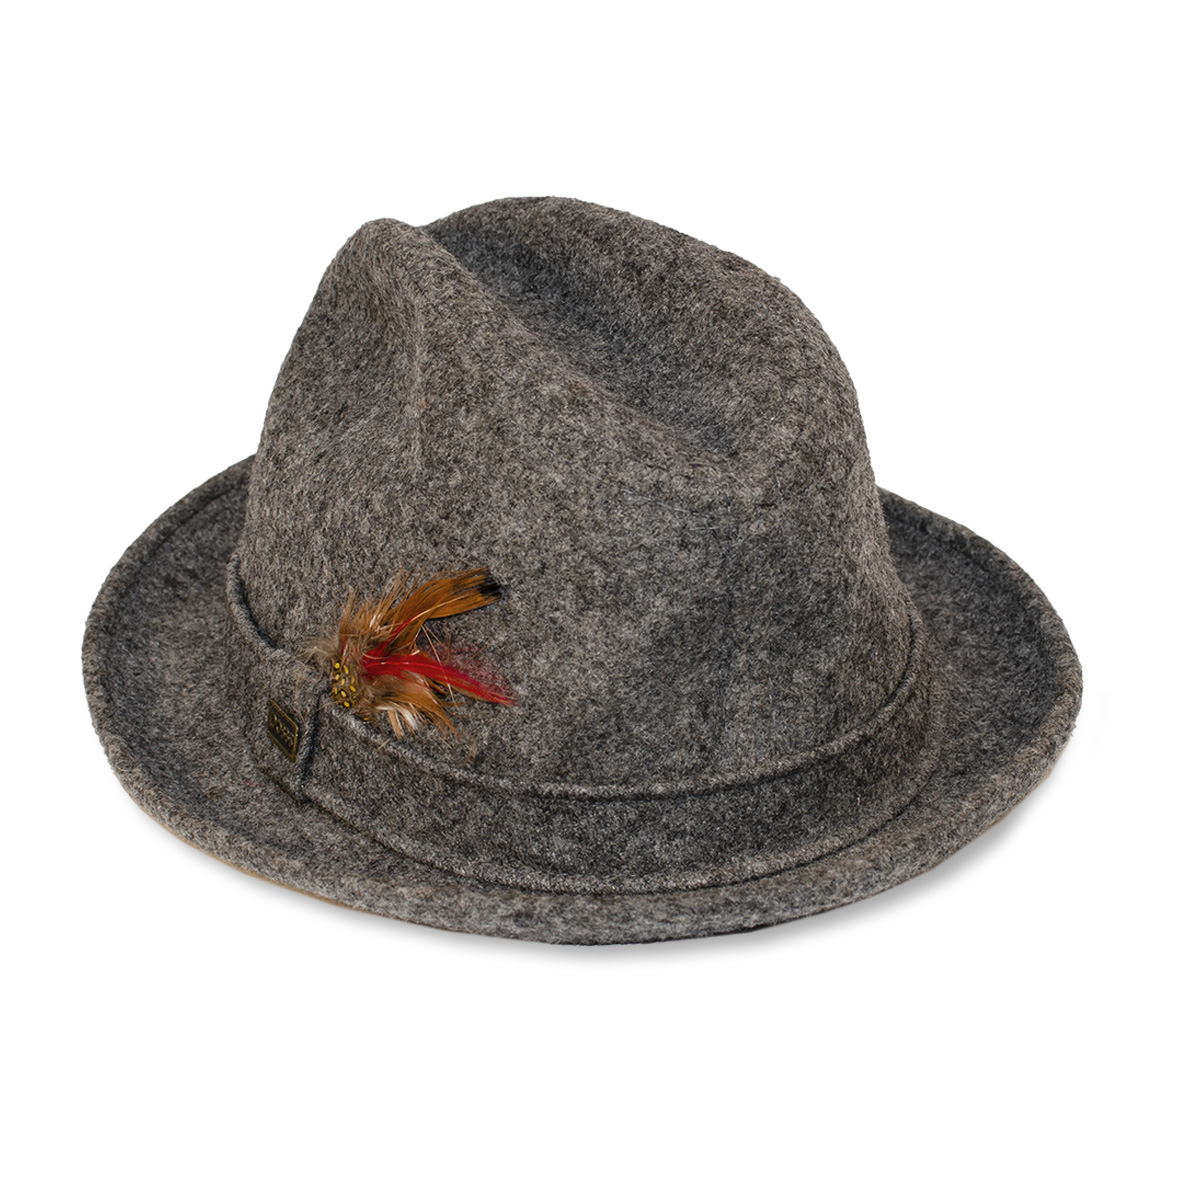 1960s trilby hat